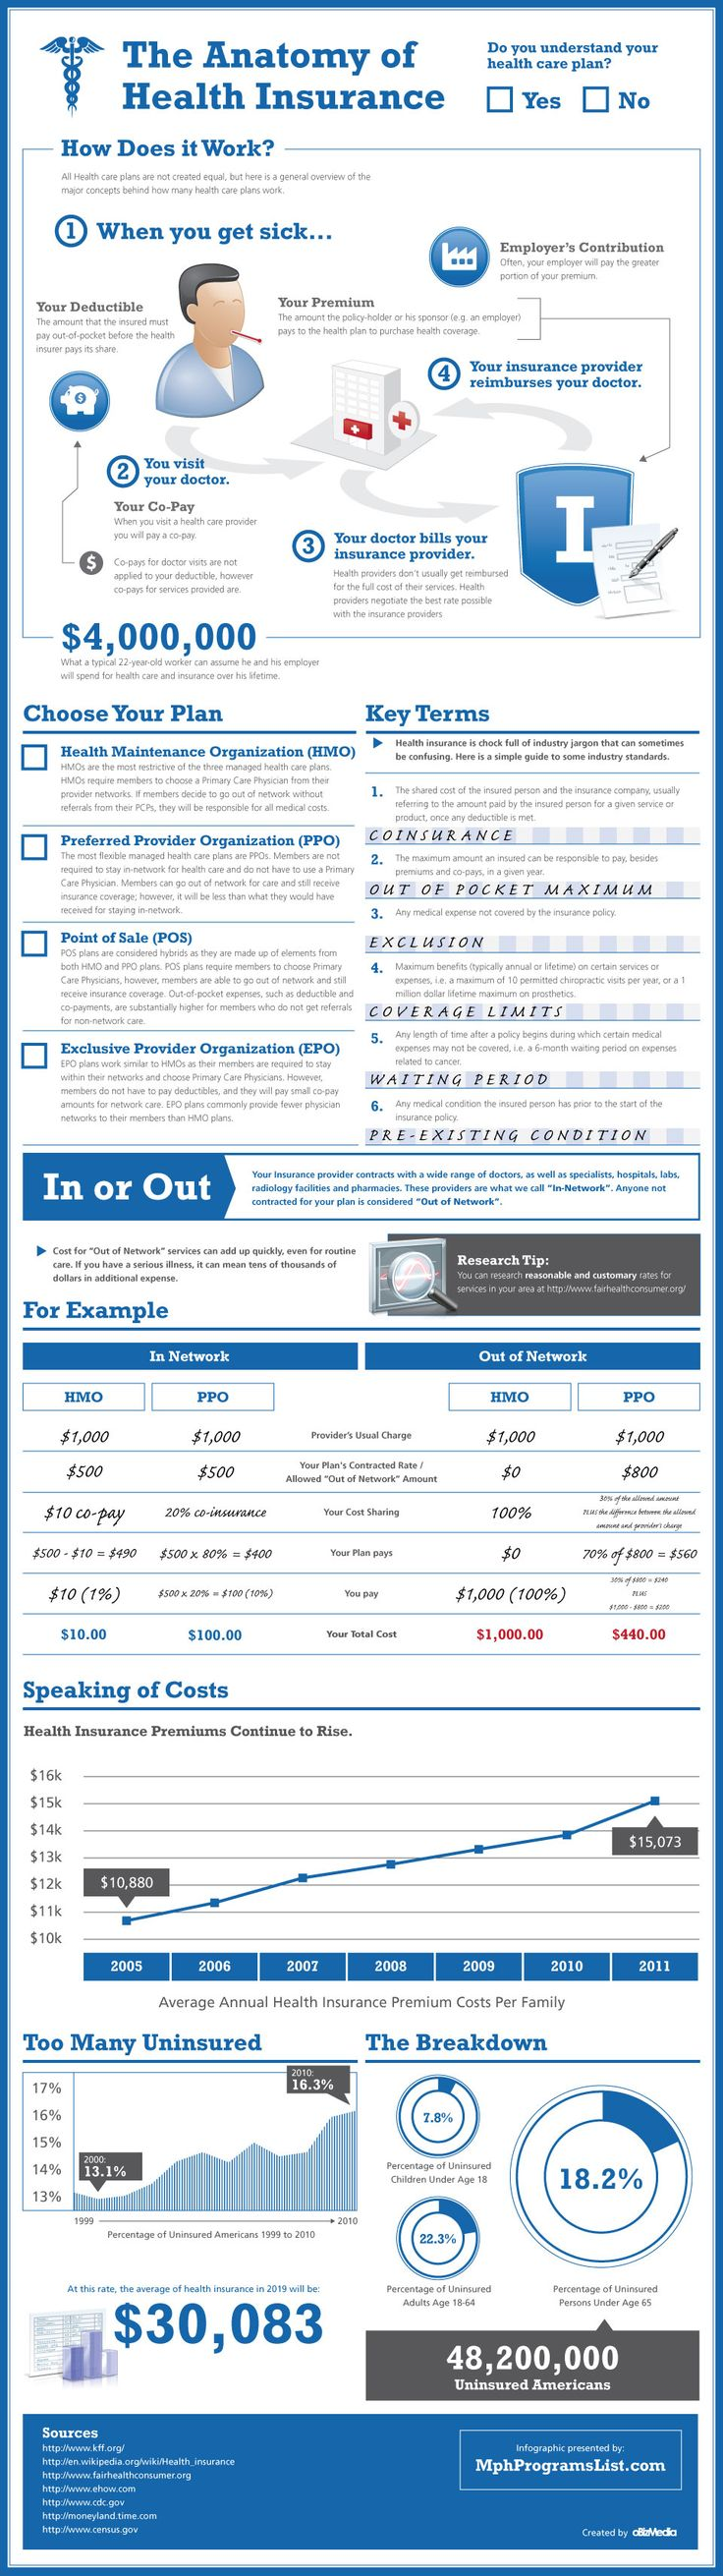 The big question: Do you understand your health-care plan? Cool graphic: Anatomy of Health Insurance